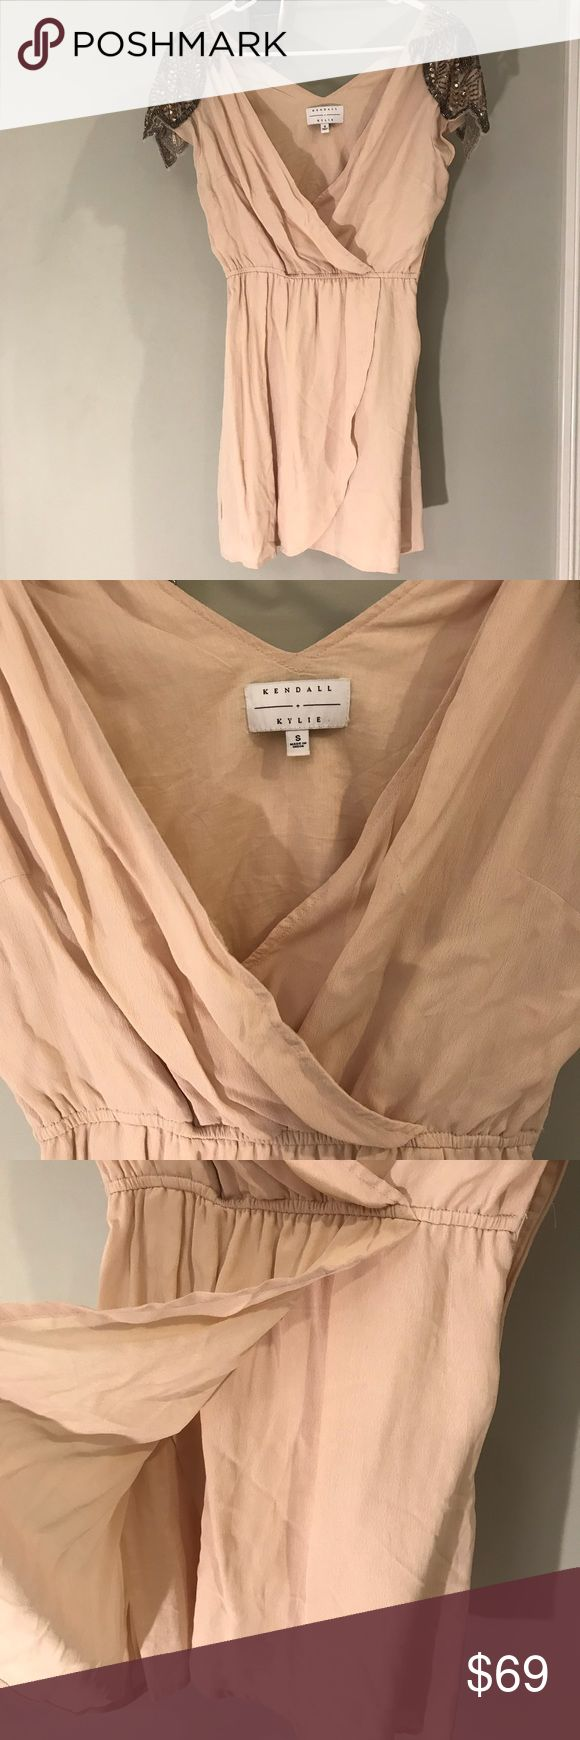 Kendall and Kylie dress Nude beaded Kendall and Kylie dress. Only worn once! The beading is perfect there is nothing missing! Willing to consider any offers! Runs a tad shorter. Kendall & Kylie Dresses Mini